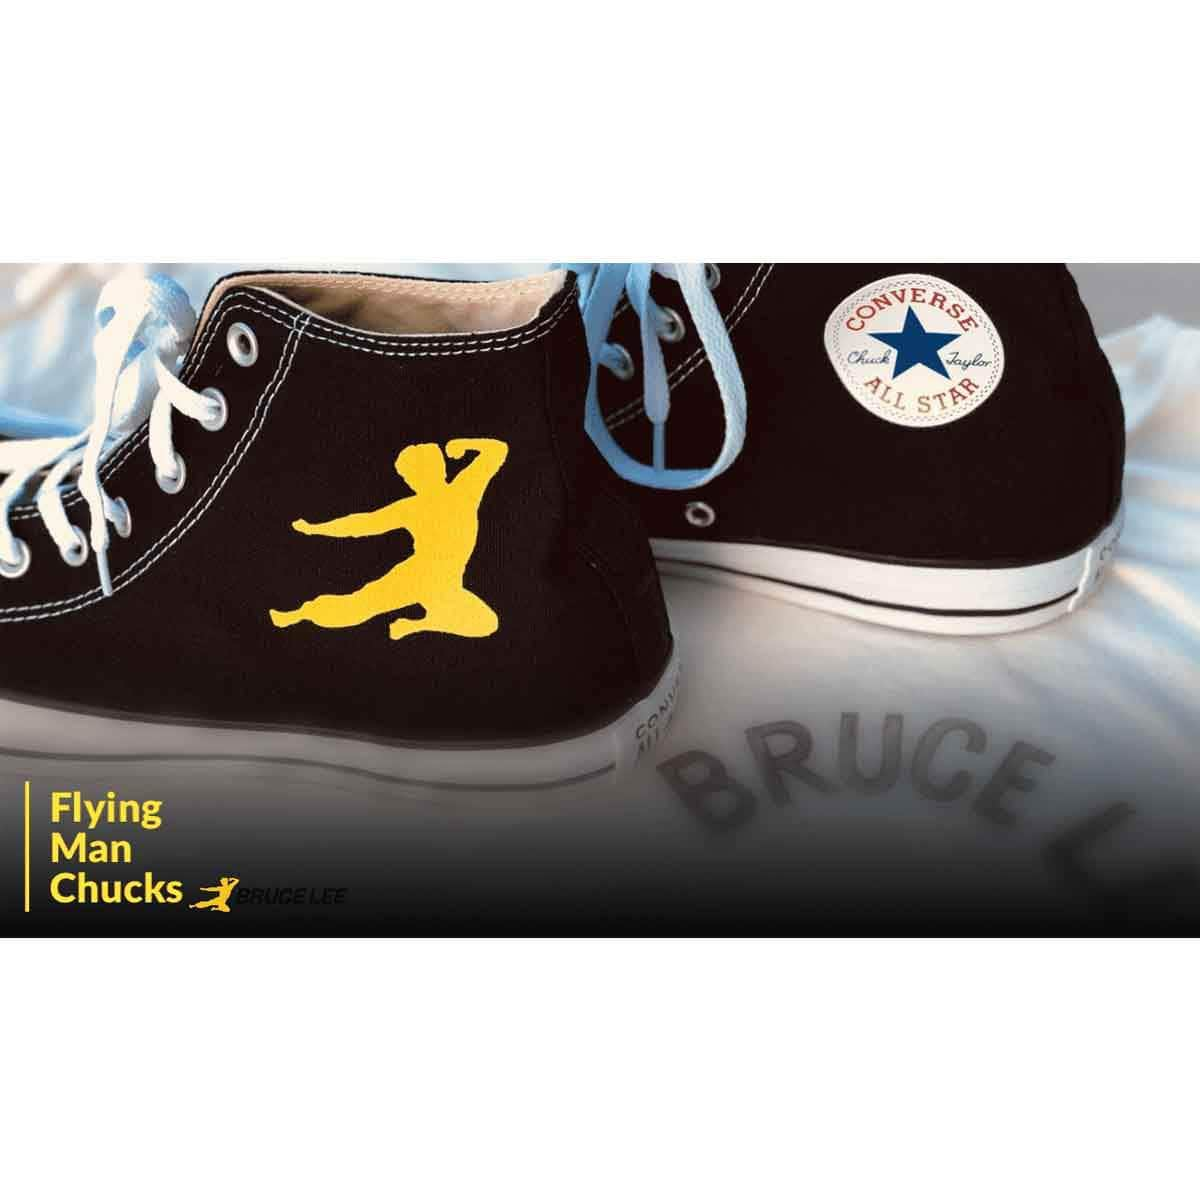 29c995f6908ab7 Bruce lee official flying man converse chuck taylor all star high top  sneakers jpg 1200x1200 Bruce